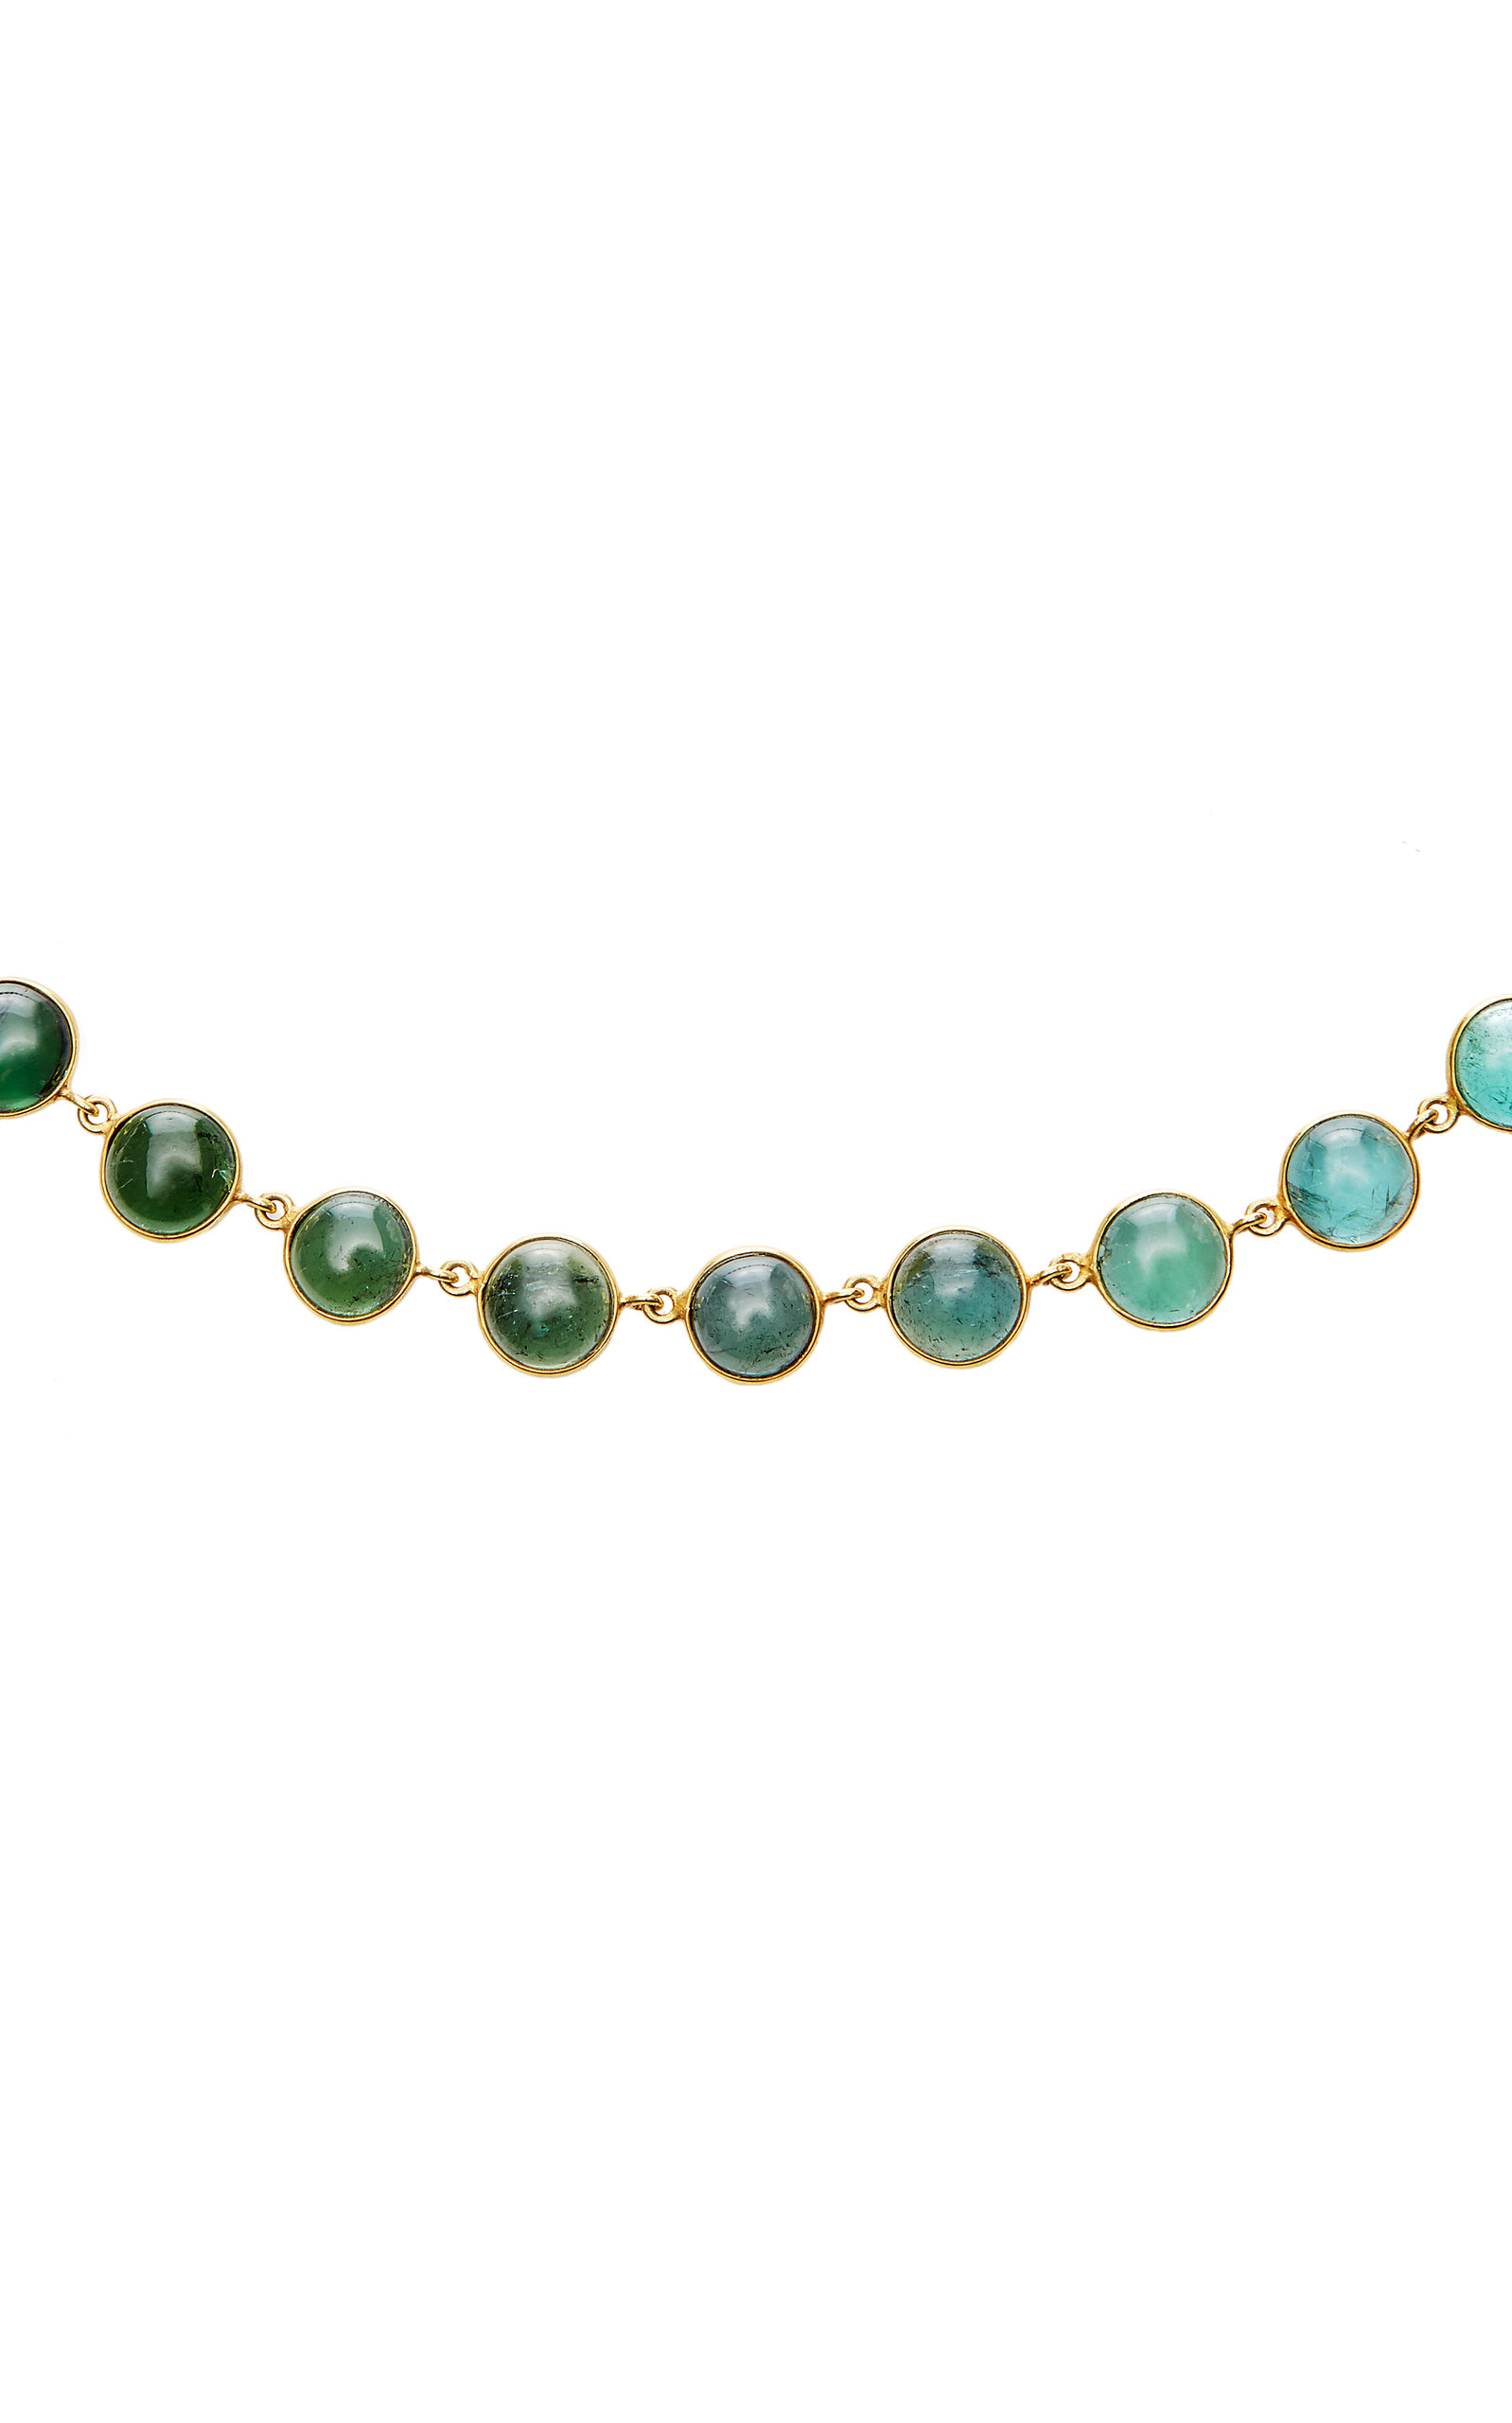 One-Of-A-Kind Turquoise Necklace Bahina mWcUrk5